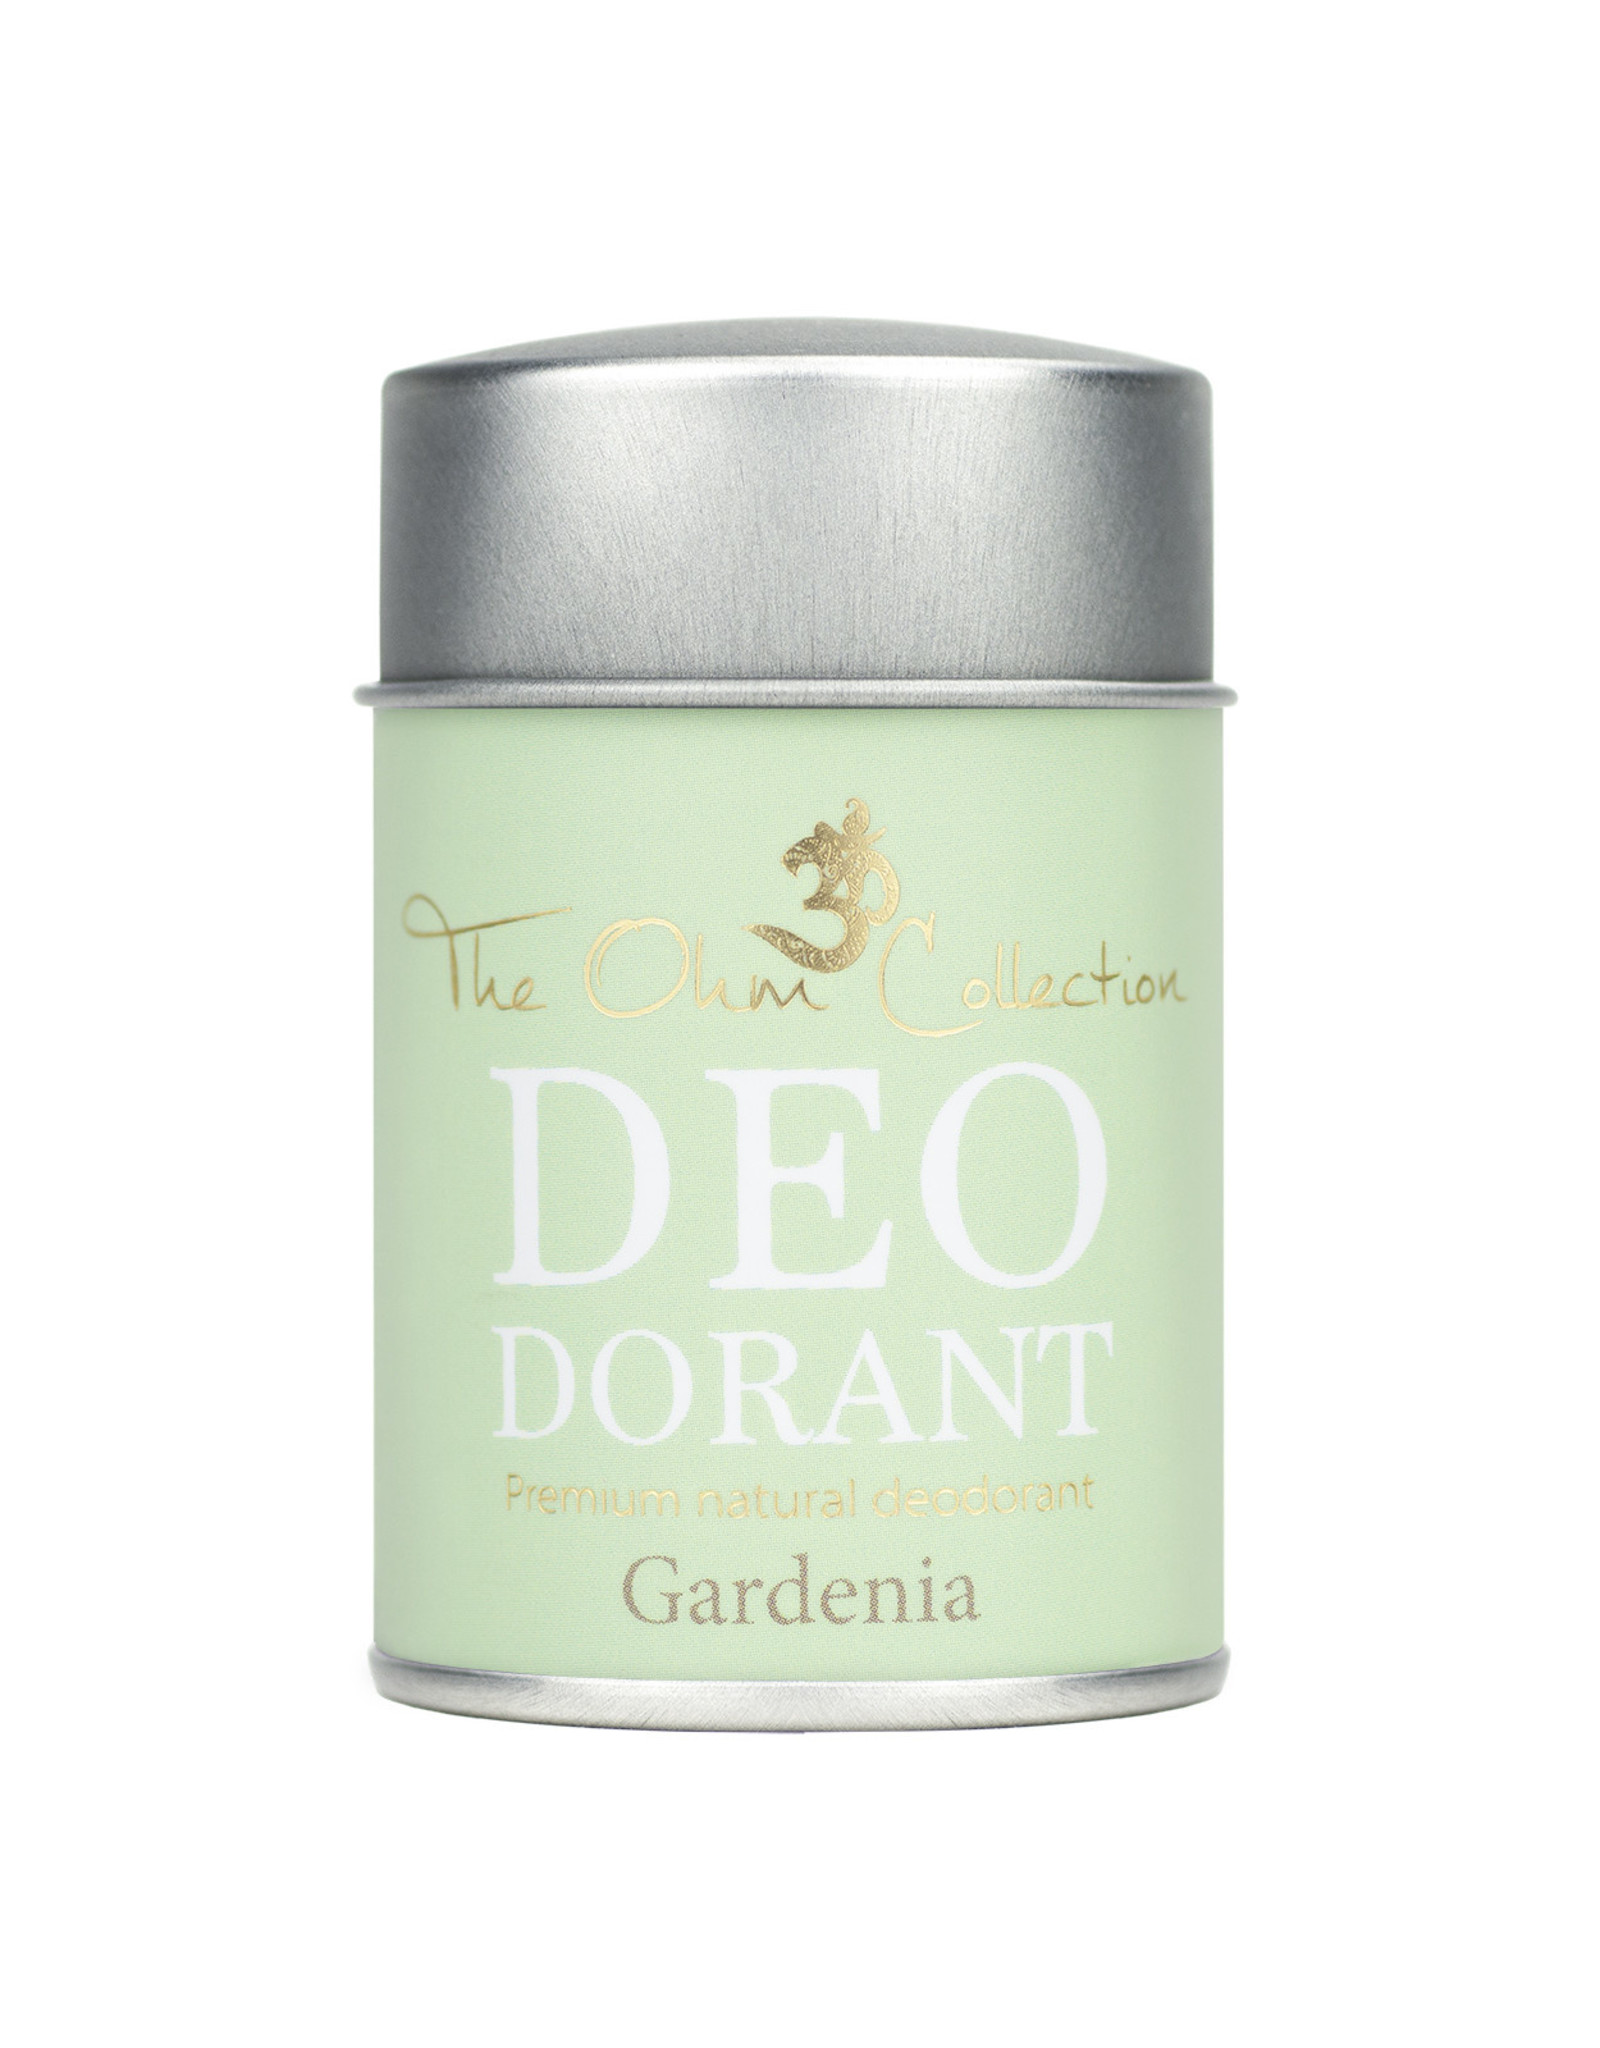 The Ohm Collection Deo Dorant - Gardenia 50g